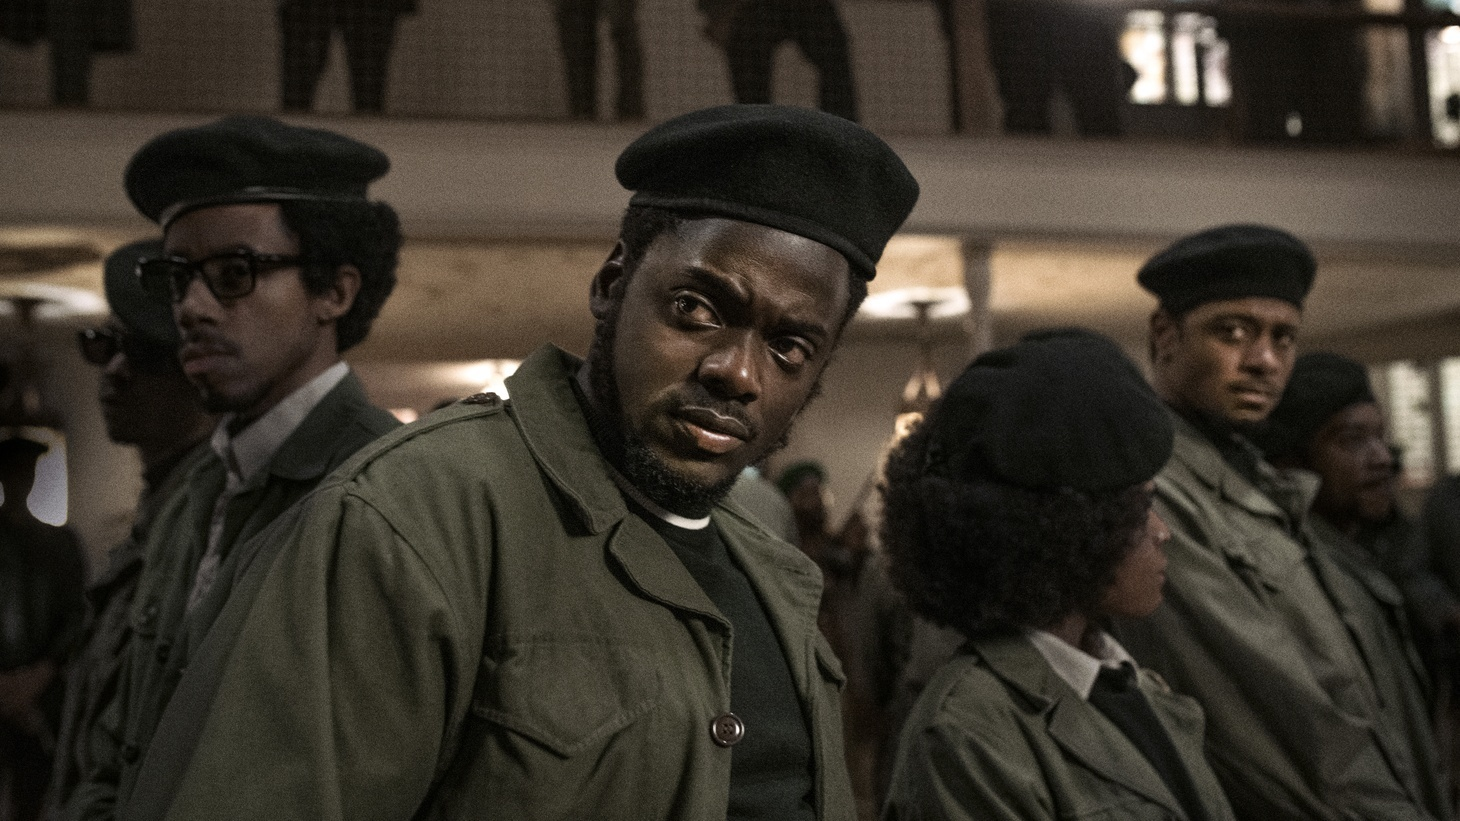 """(L-R) Darrell Britt-Gibson as Bobby Rush, Daniel Kaluuya as Chairman Fred Hampton and Lakeith Stanfield as in """"Judas and the Black Messiah."""""""